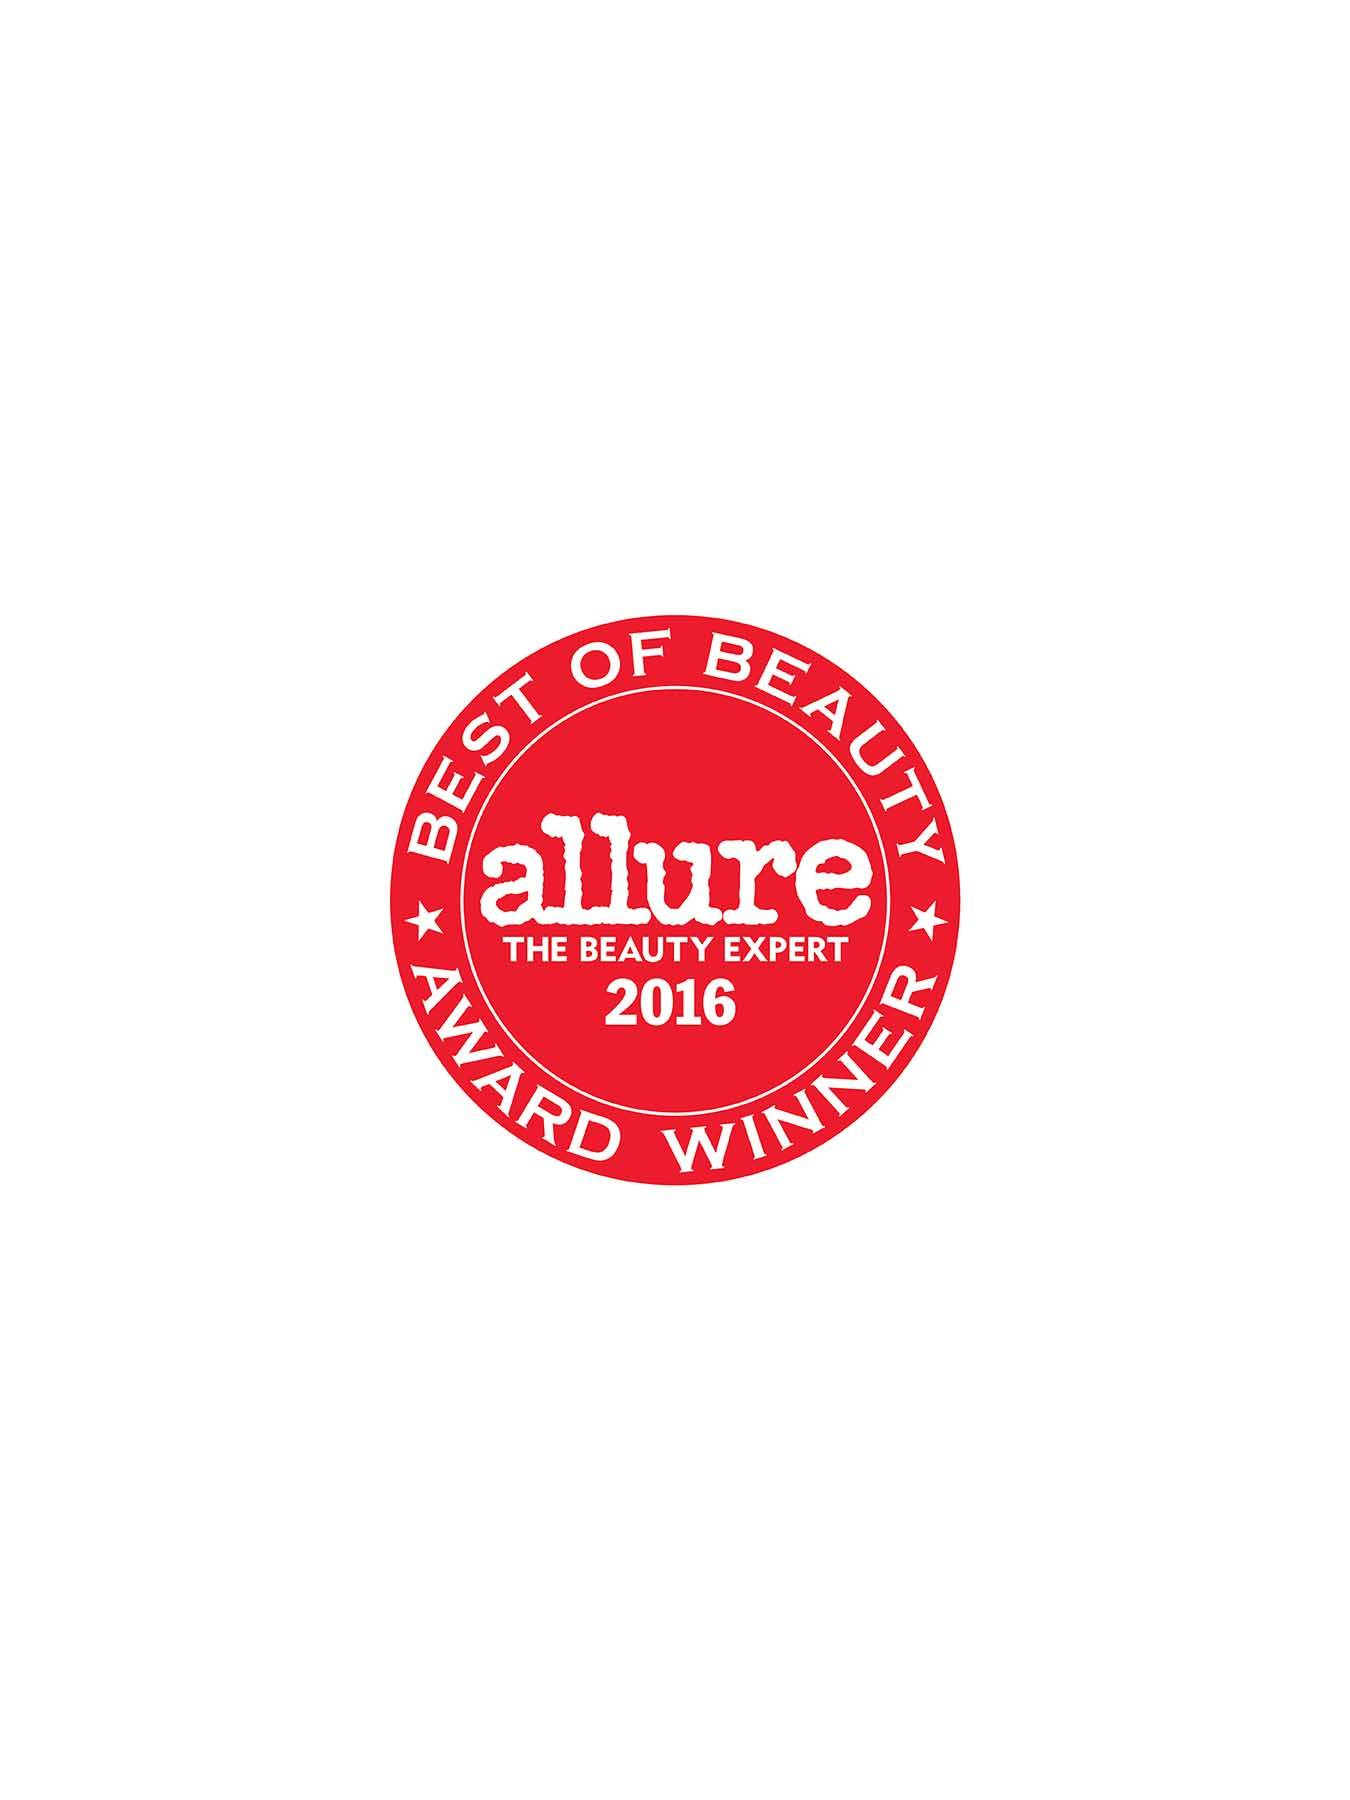 Allure Best of Beauty 2016.